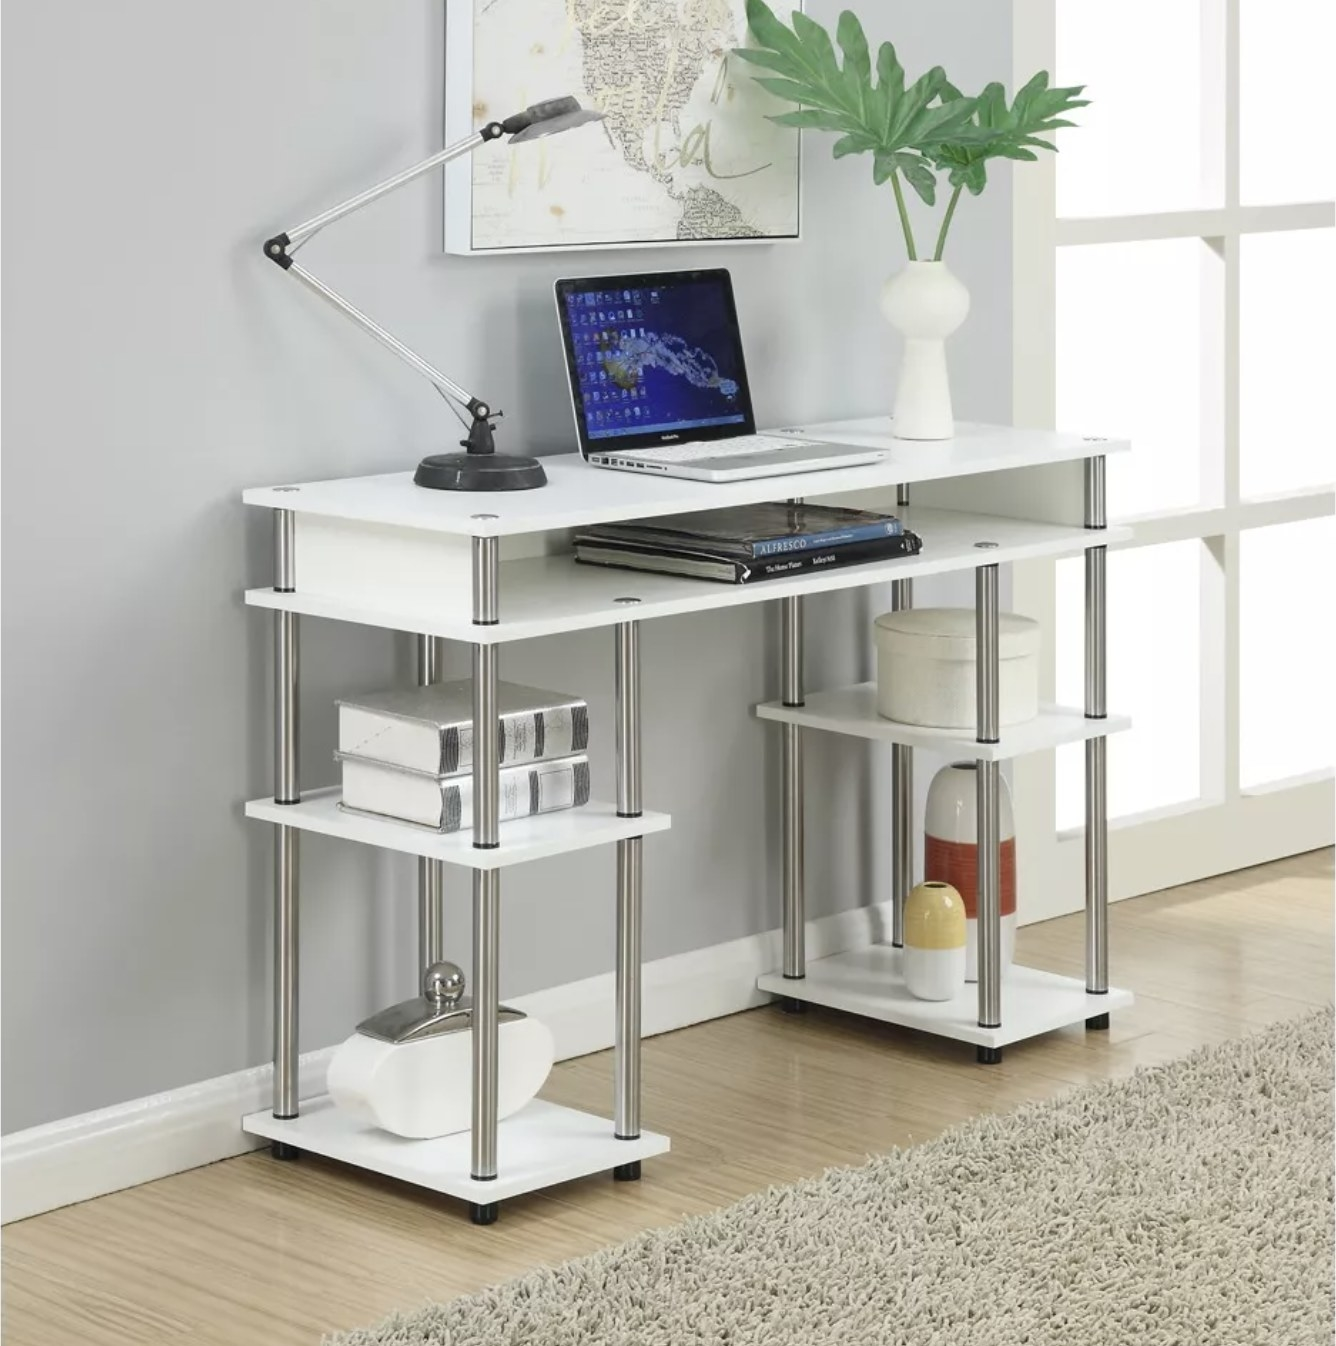 A white and chrome writing desk with five storage shelves